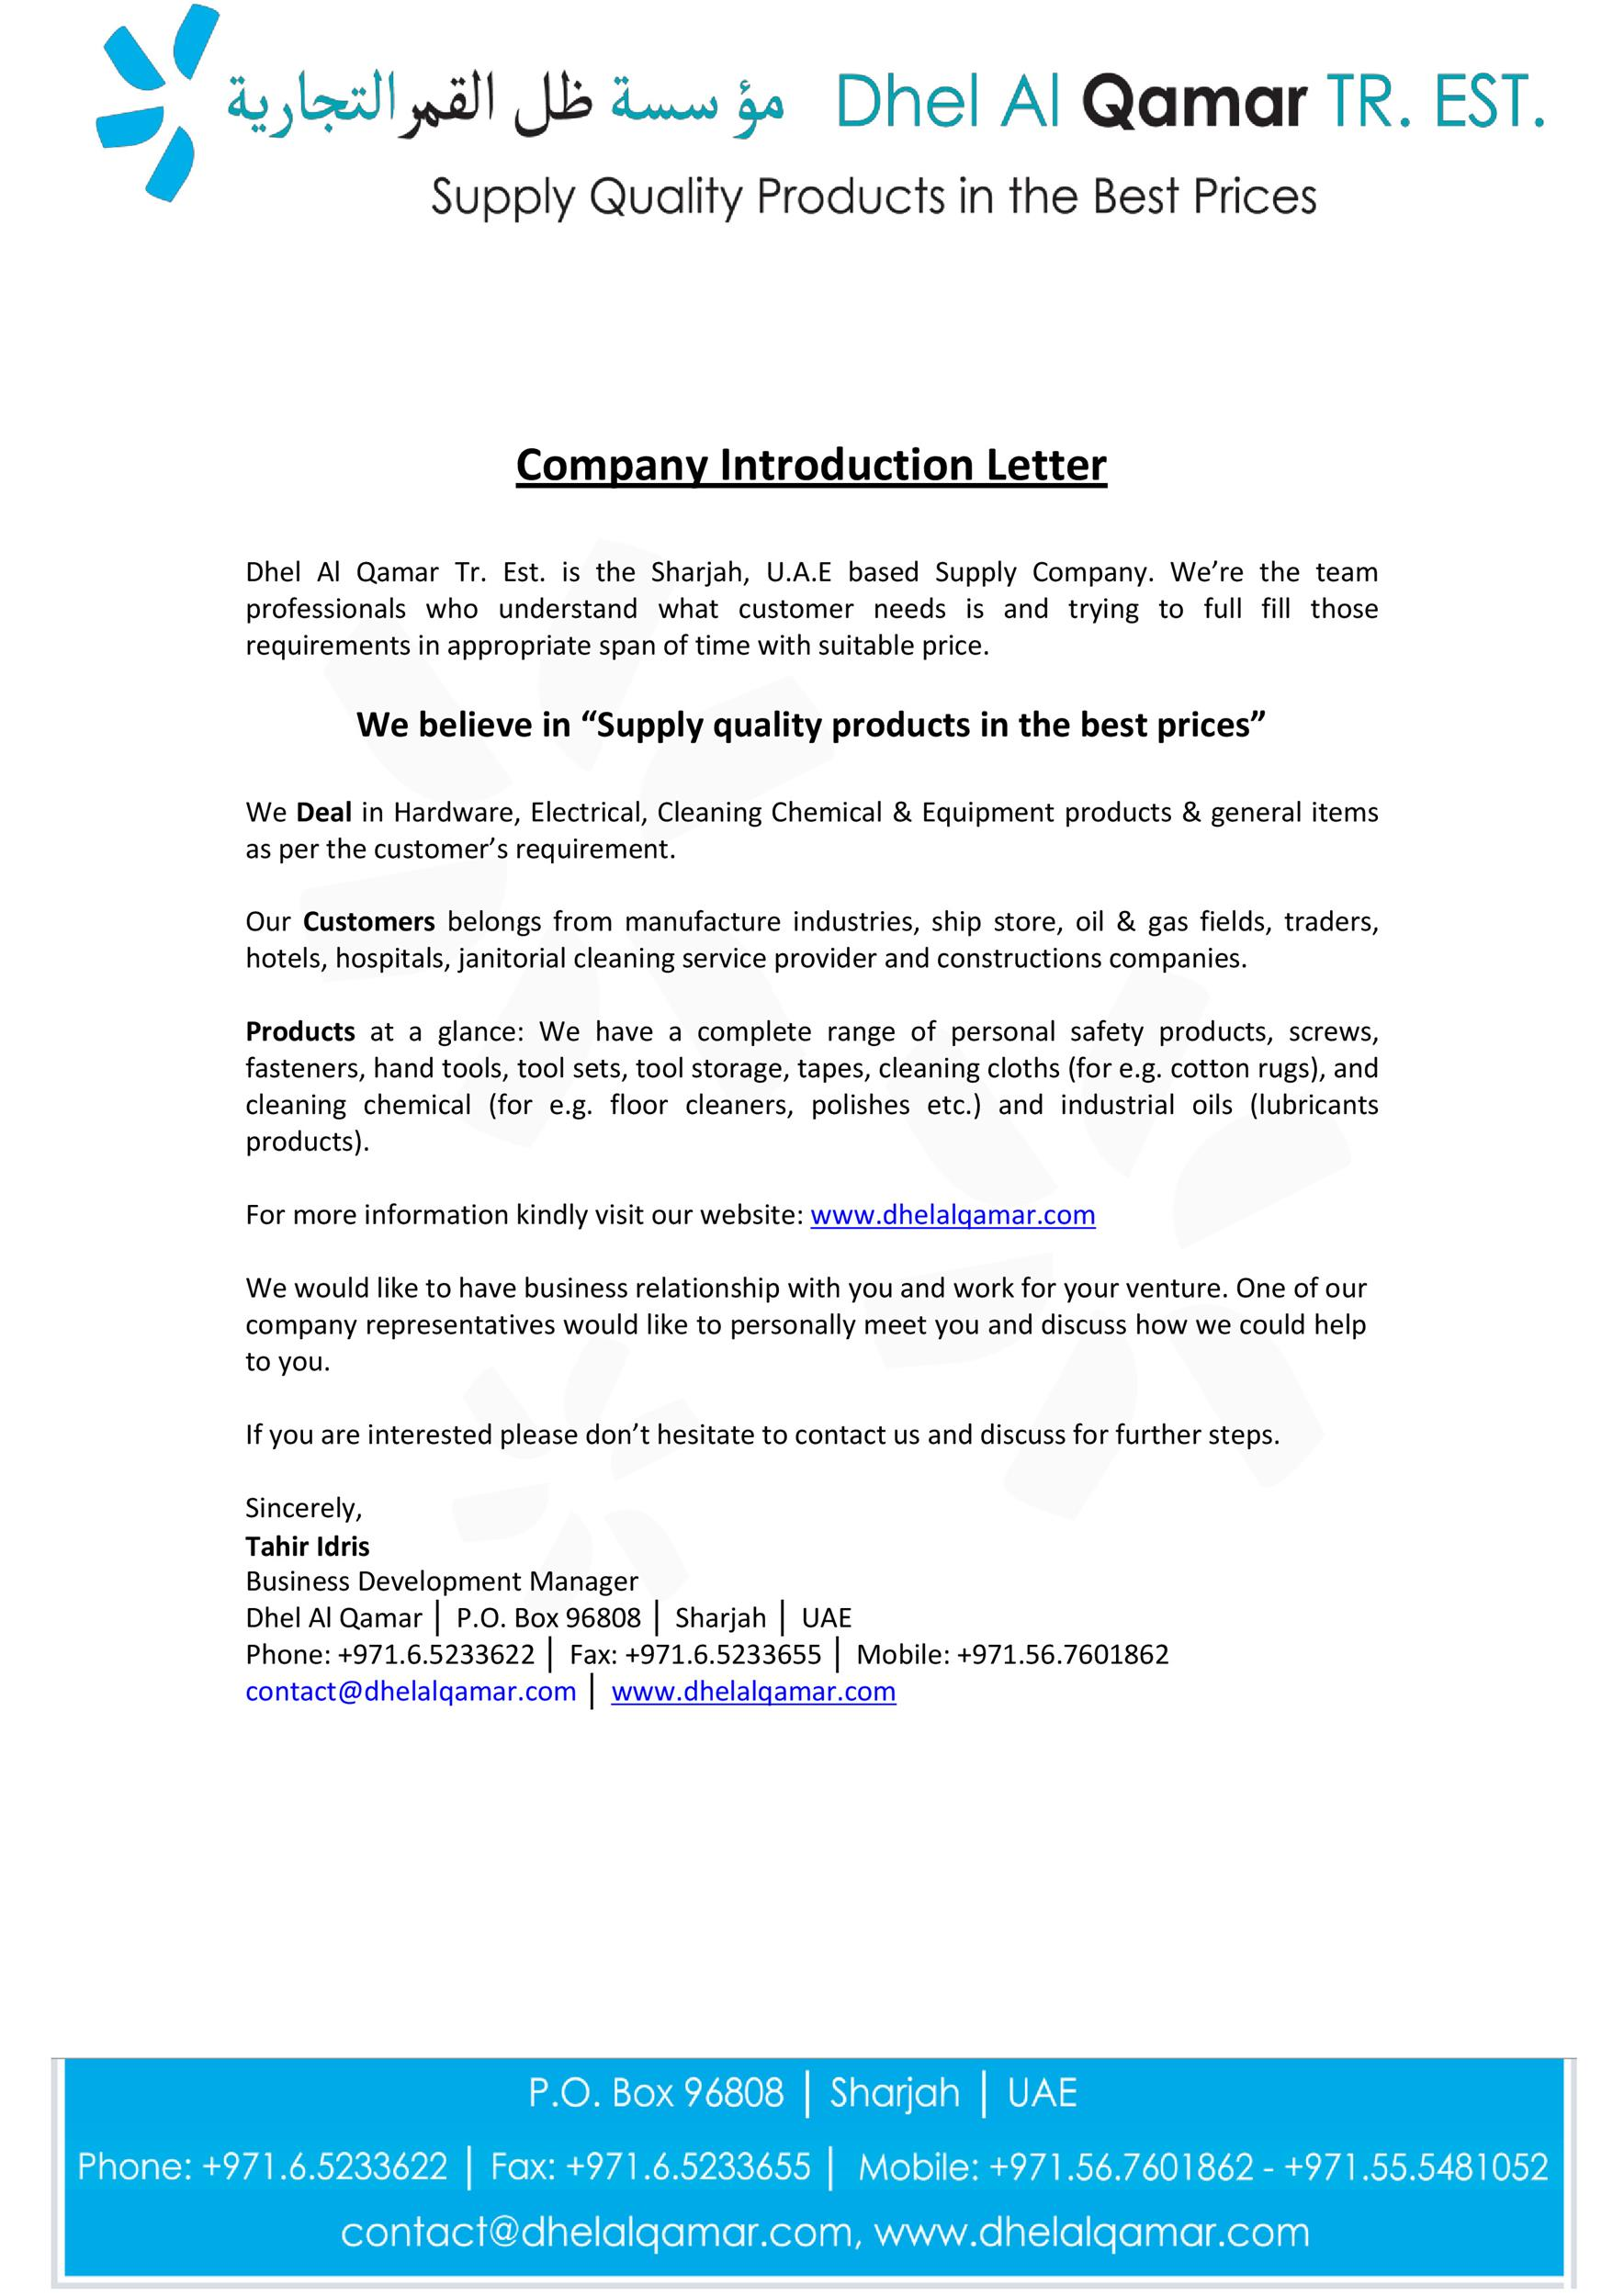 34 Free Business Introduction Letters (PDF & MS Word) ᐅ TemplateLab